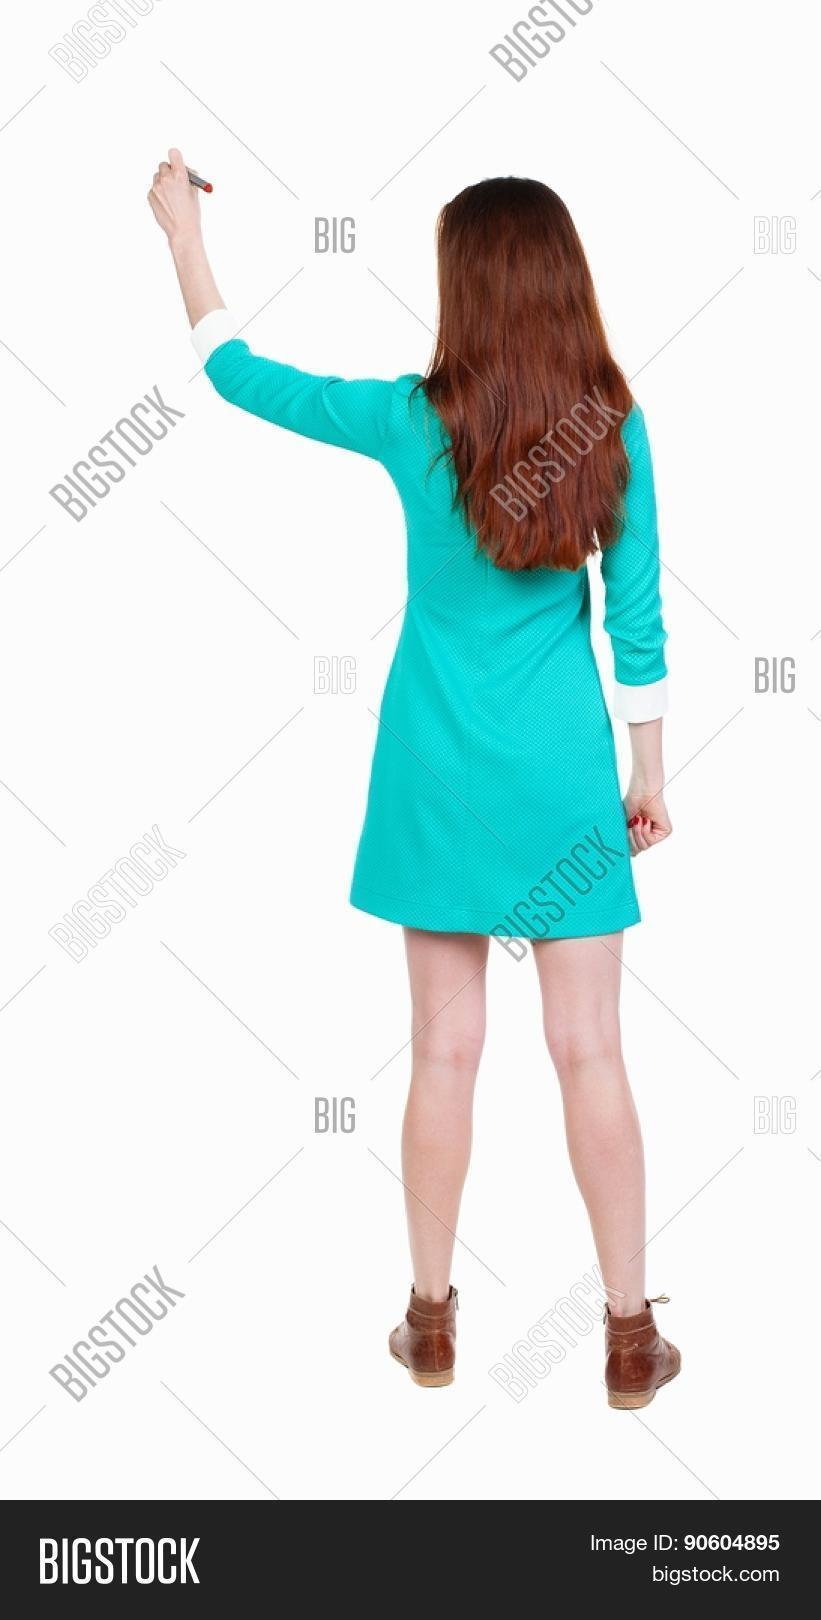 Back View Writing Image Photo Free Trial Bigstock